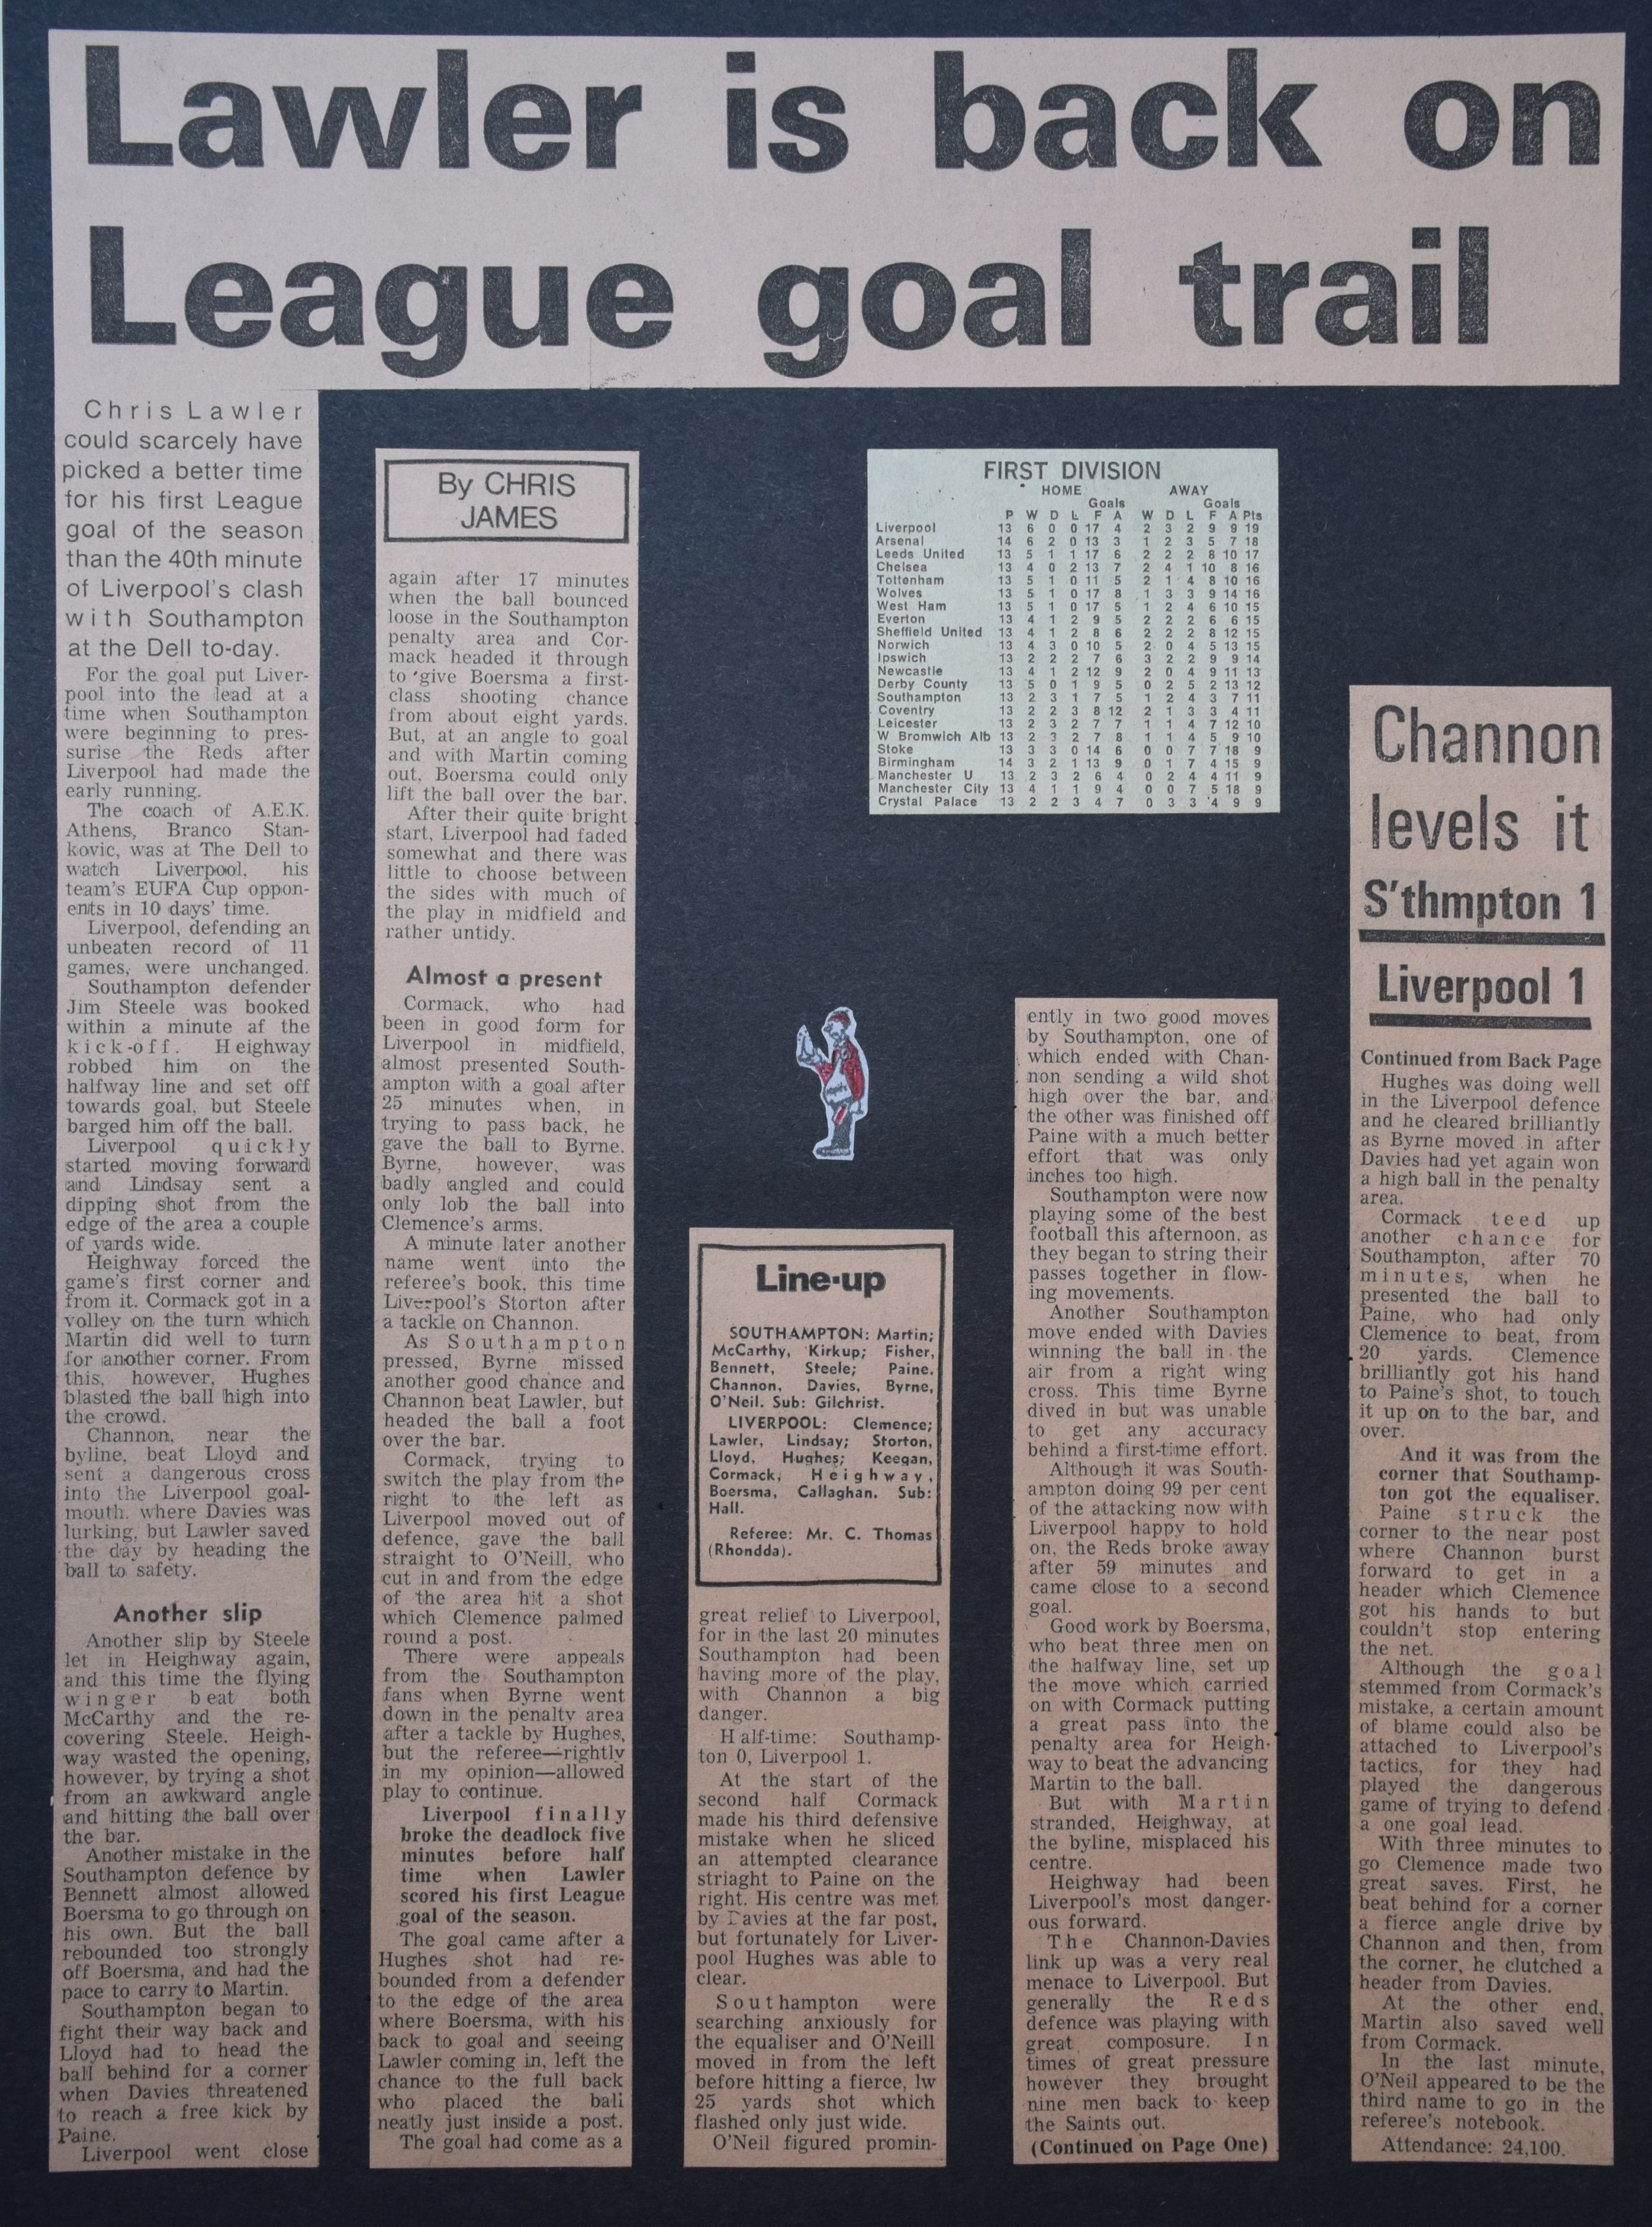 Lawler is back on league goal trail - 14 October 1972